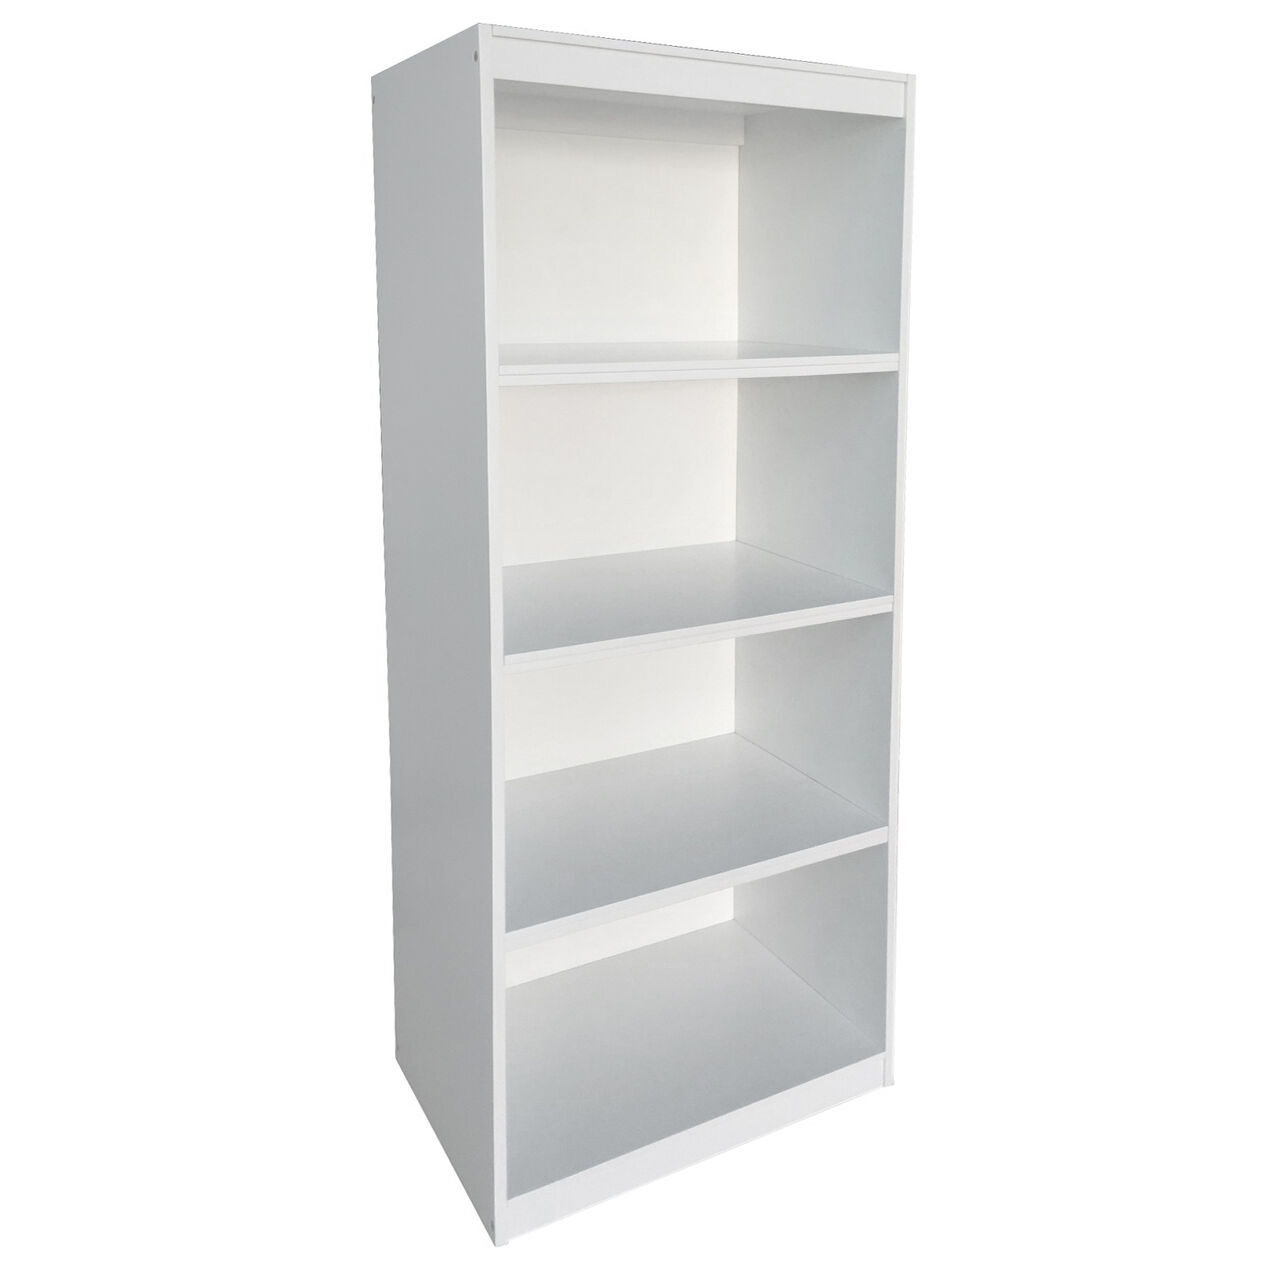 Wooden 5 Tier Bookcase White 63 H At Home – Tier Bookcase